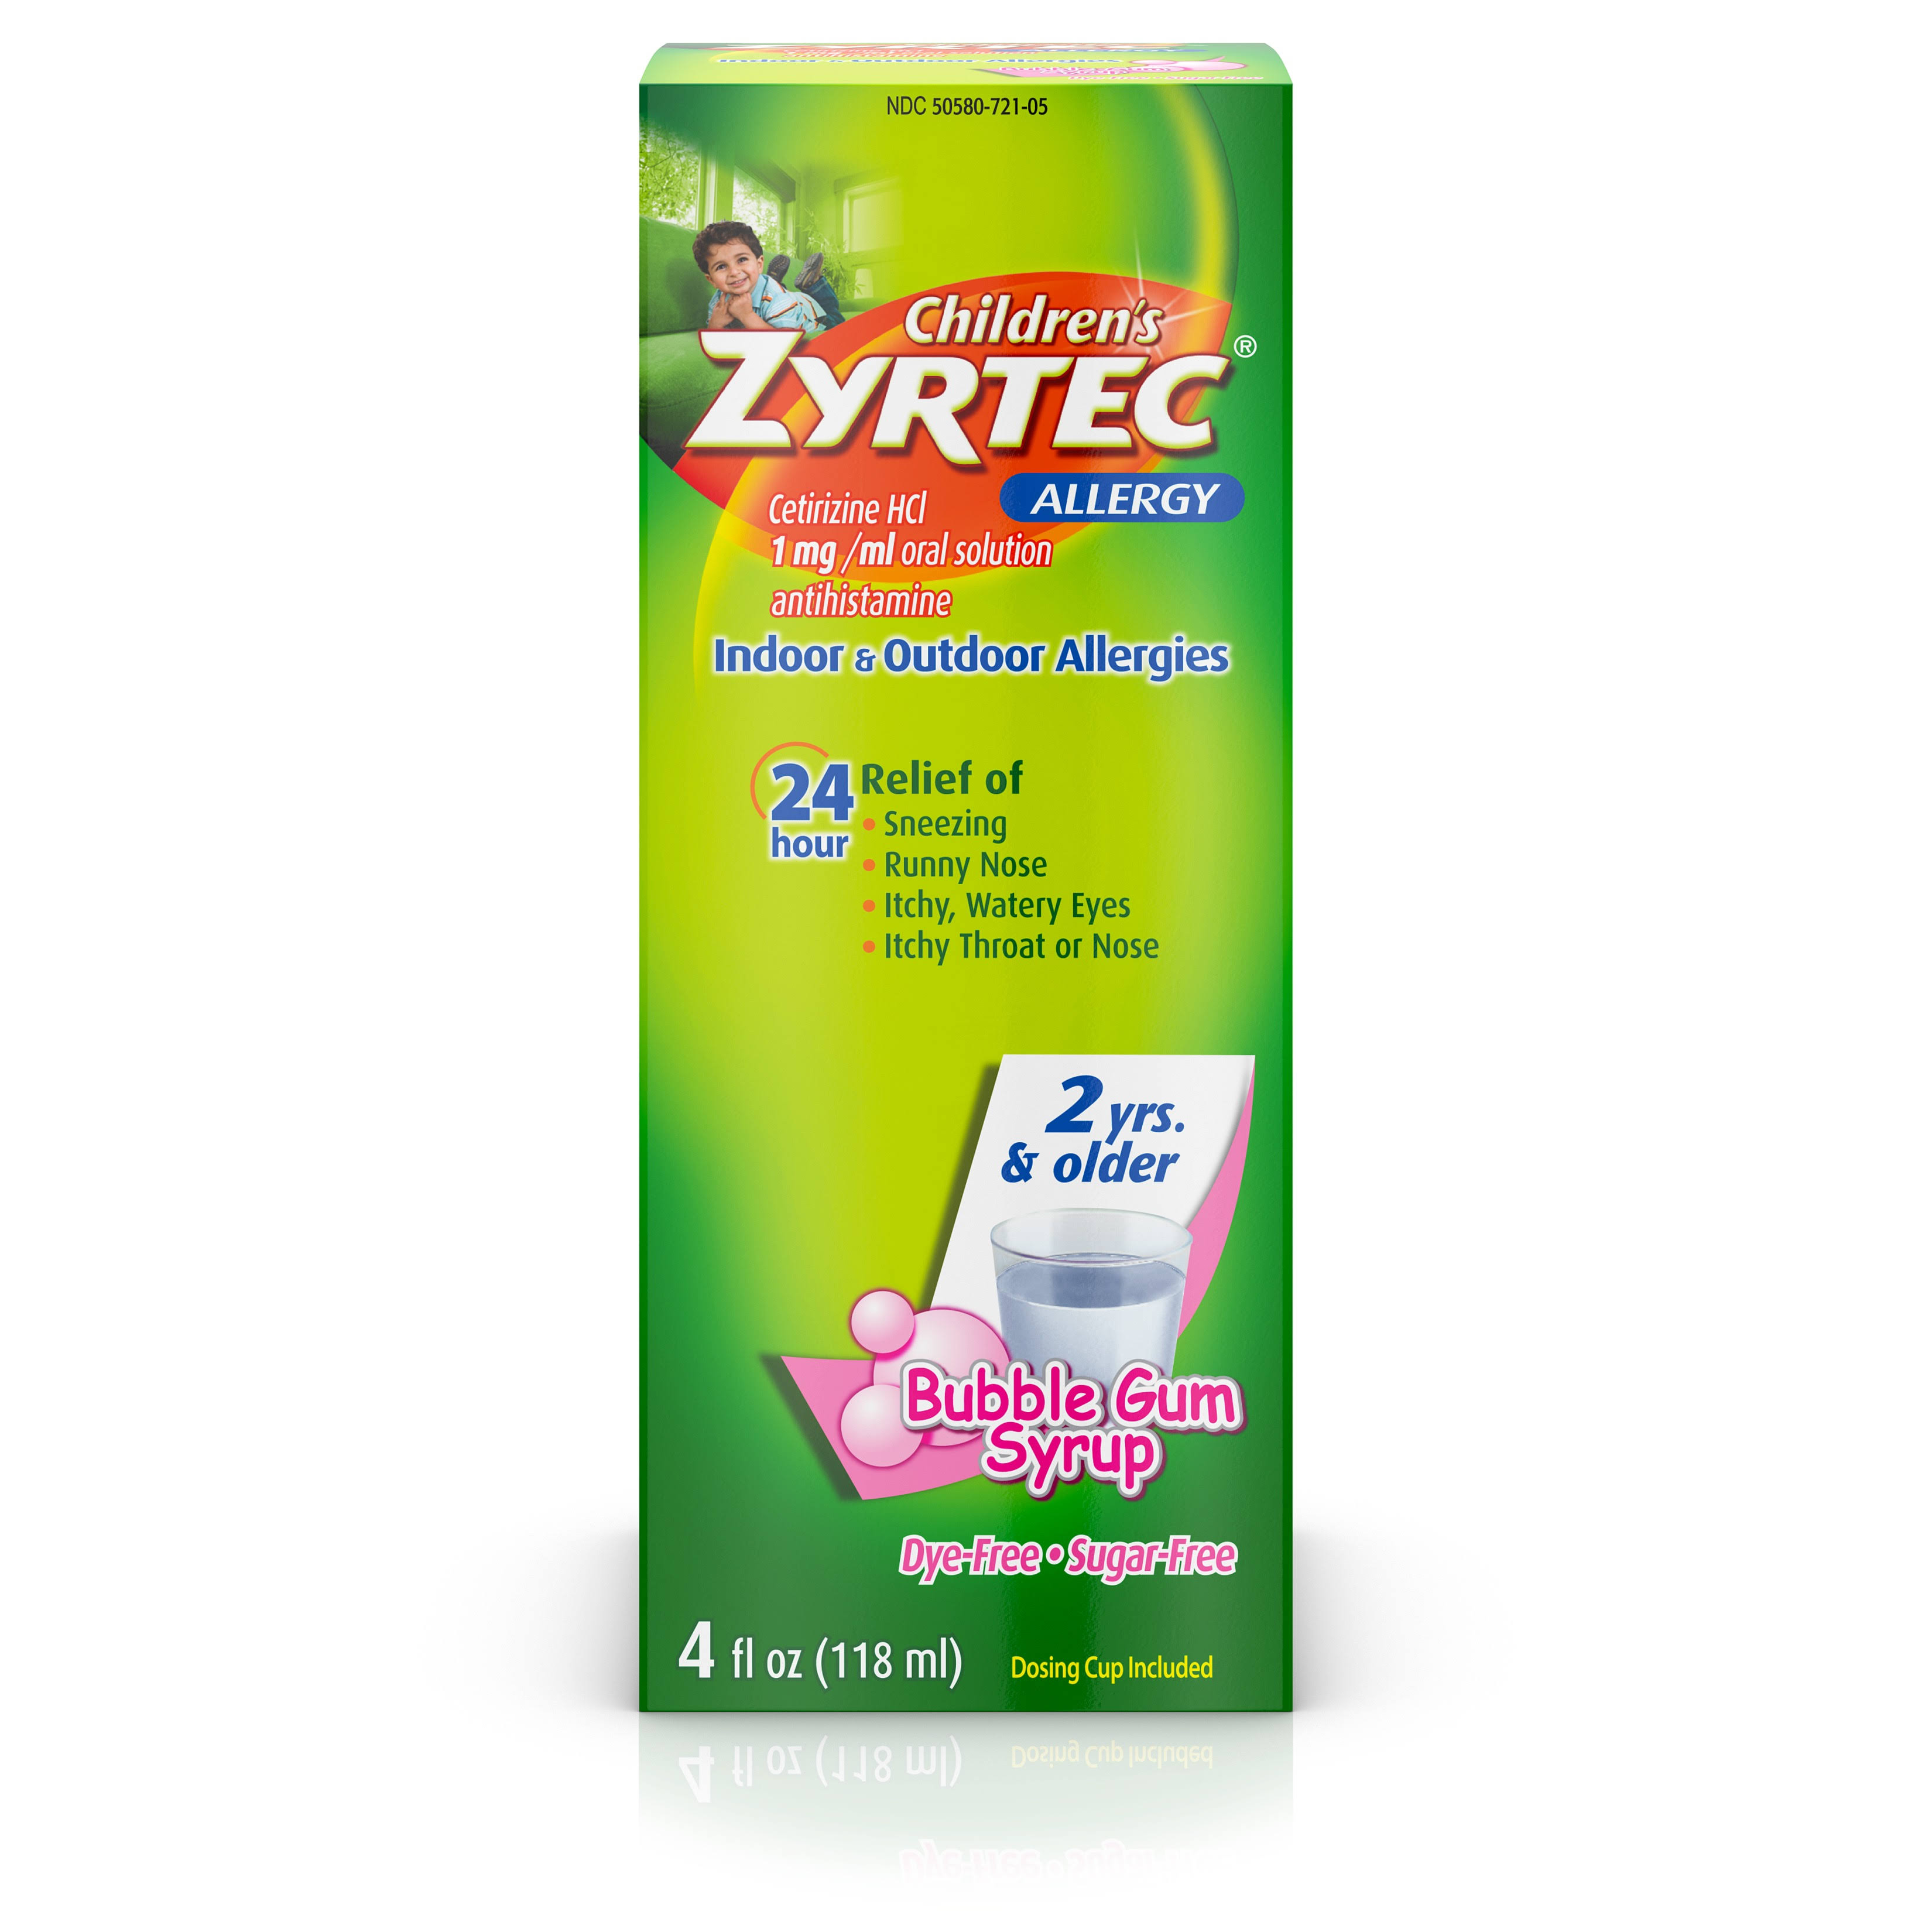 Mortin Children's Zyrtec Allergy Syrup - Bubble Gum